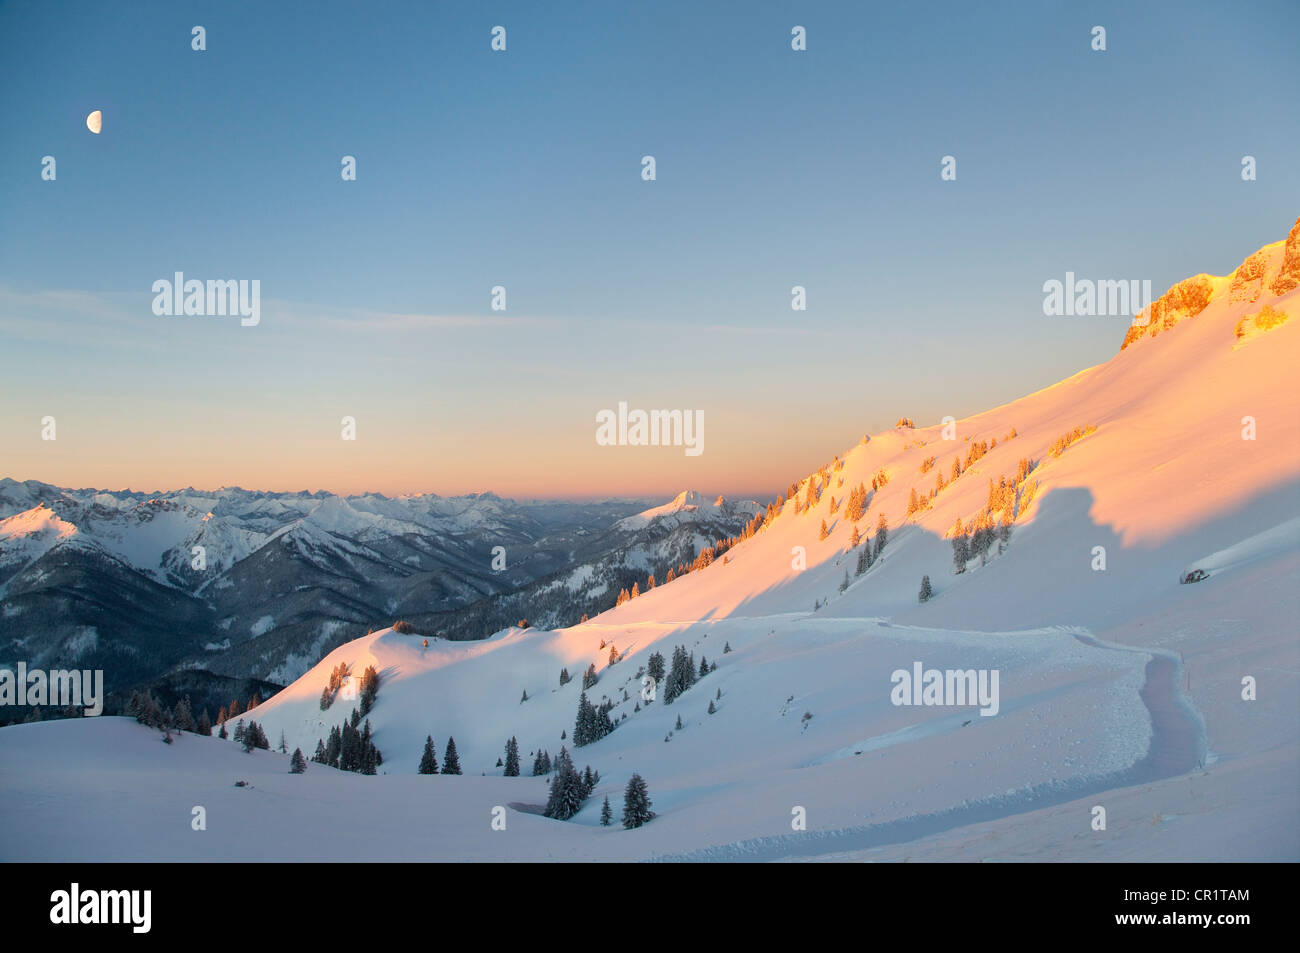 Aerial view of snowy landscape - Stock Image